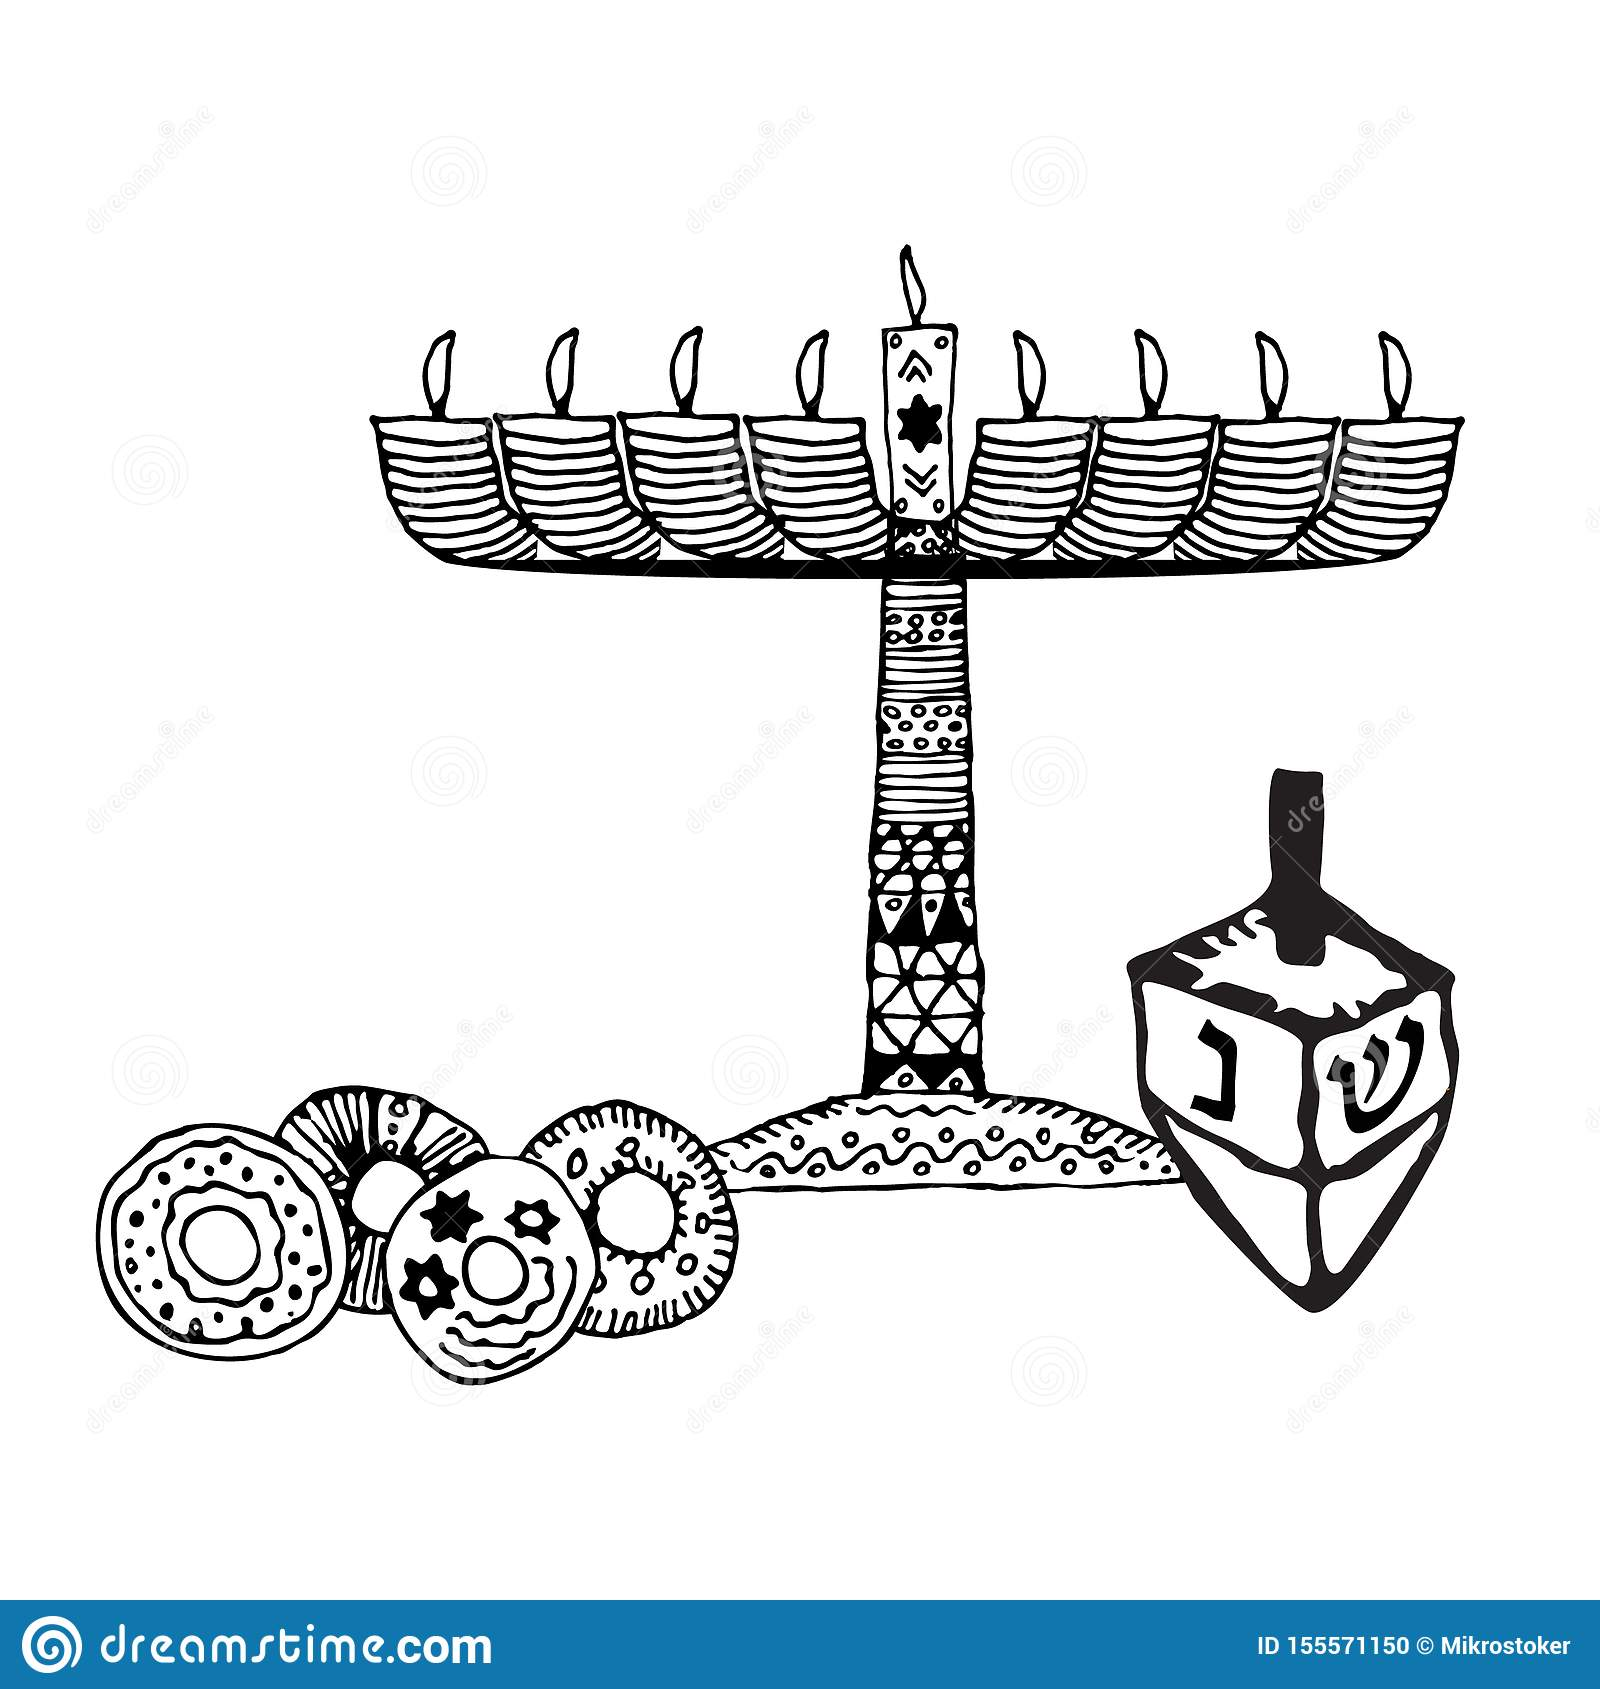 Chanukah candle, sevivon, donuts. Doodle, sketch, draw hand. Jewish religious holiday of Hanukkah. Hebrew letters